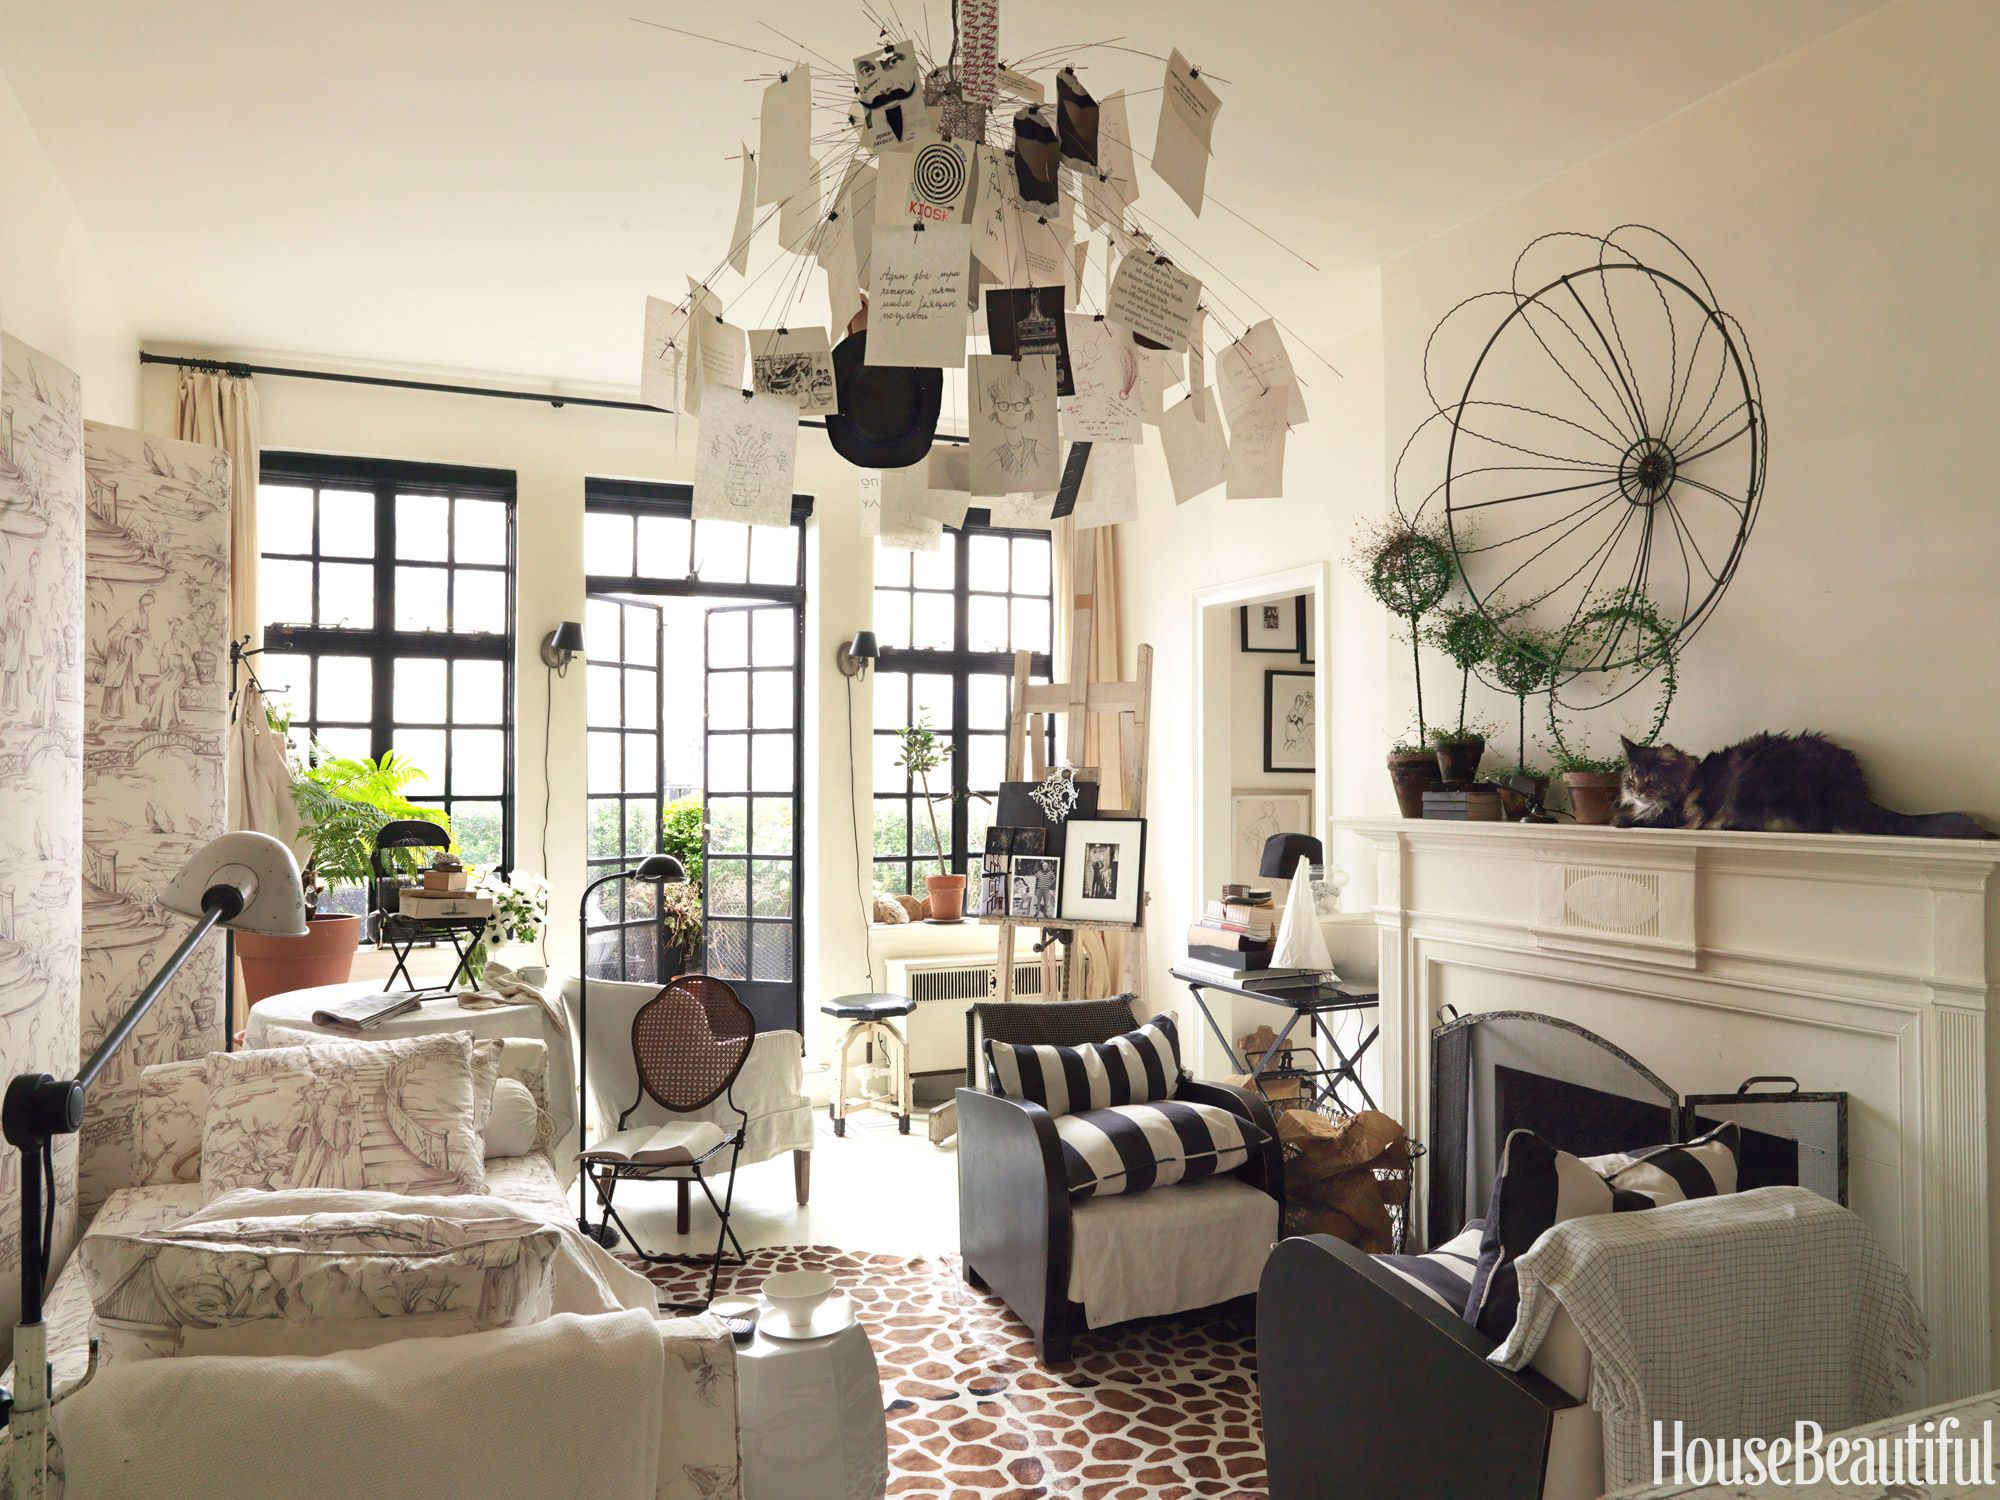 Decorating Ideas for Small Spaces - How To Organize a Small Space